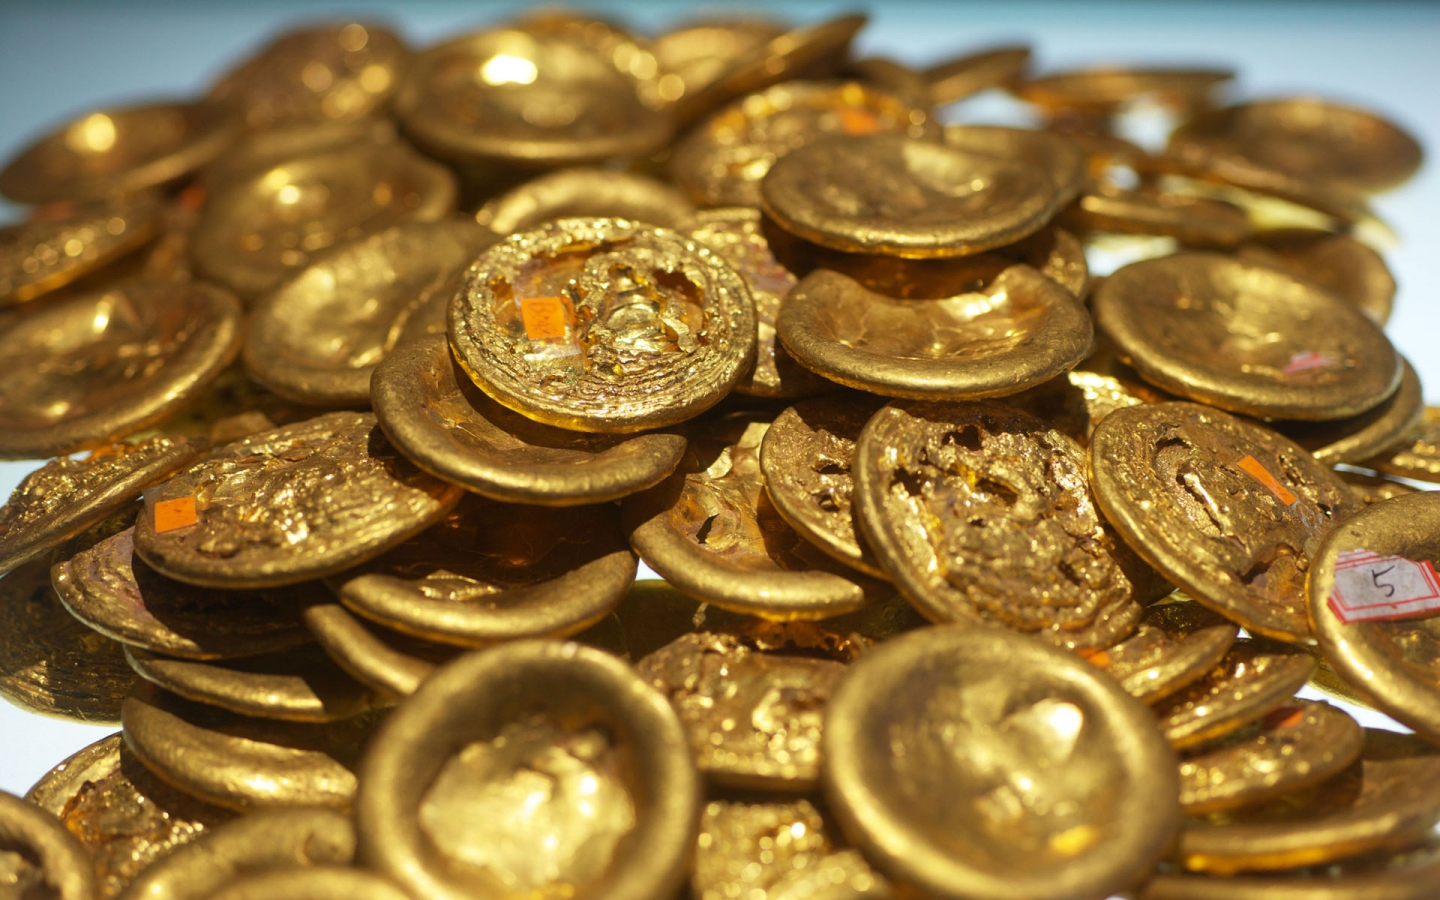 Old Chinese Gold Coins for 1440 x 900 widescreen resolution